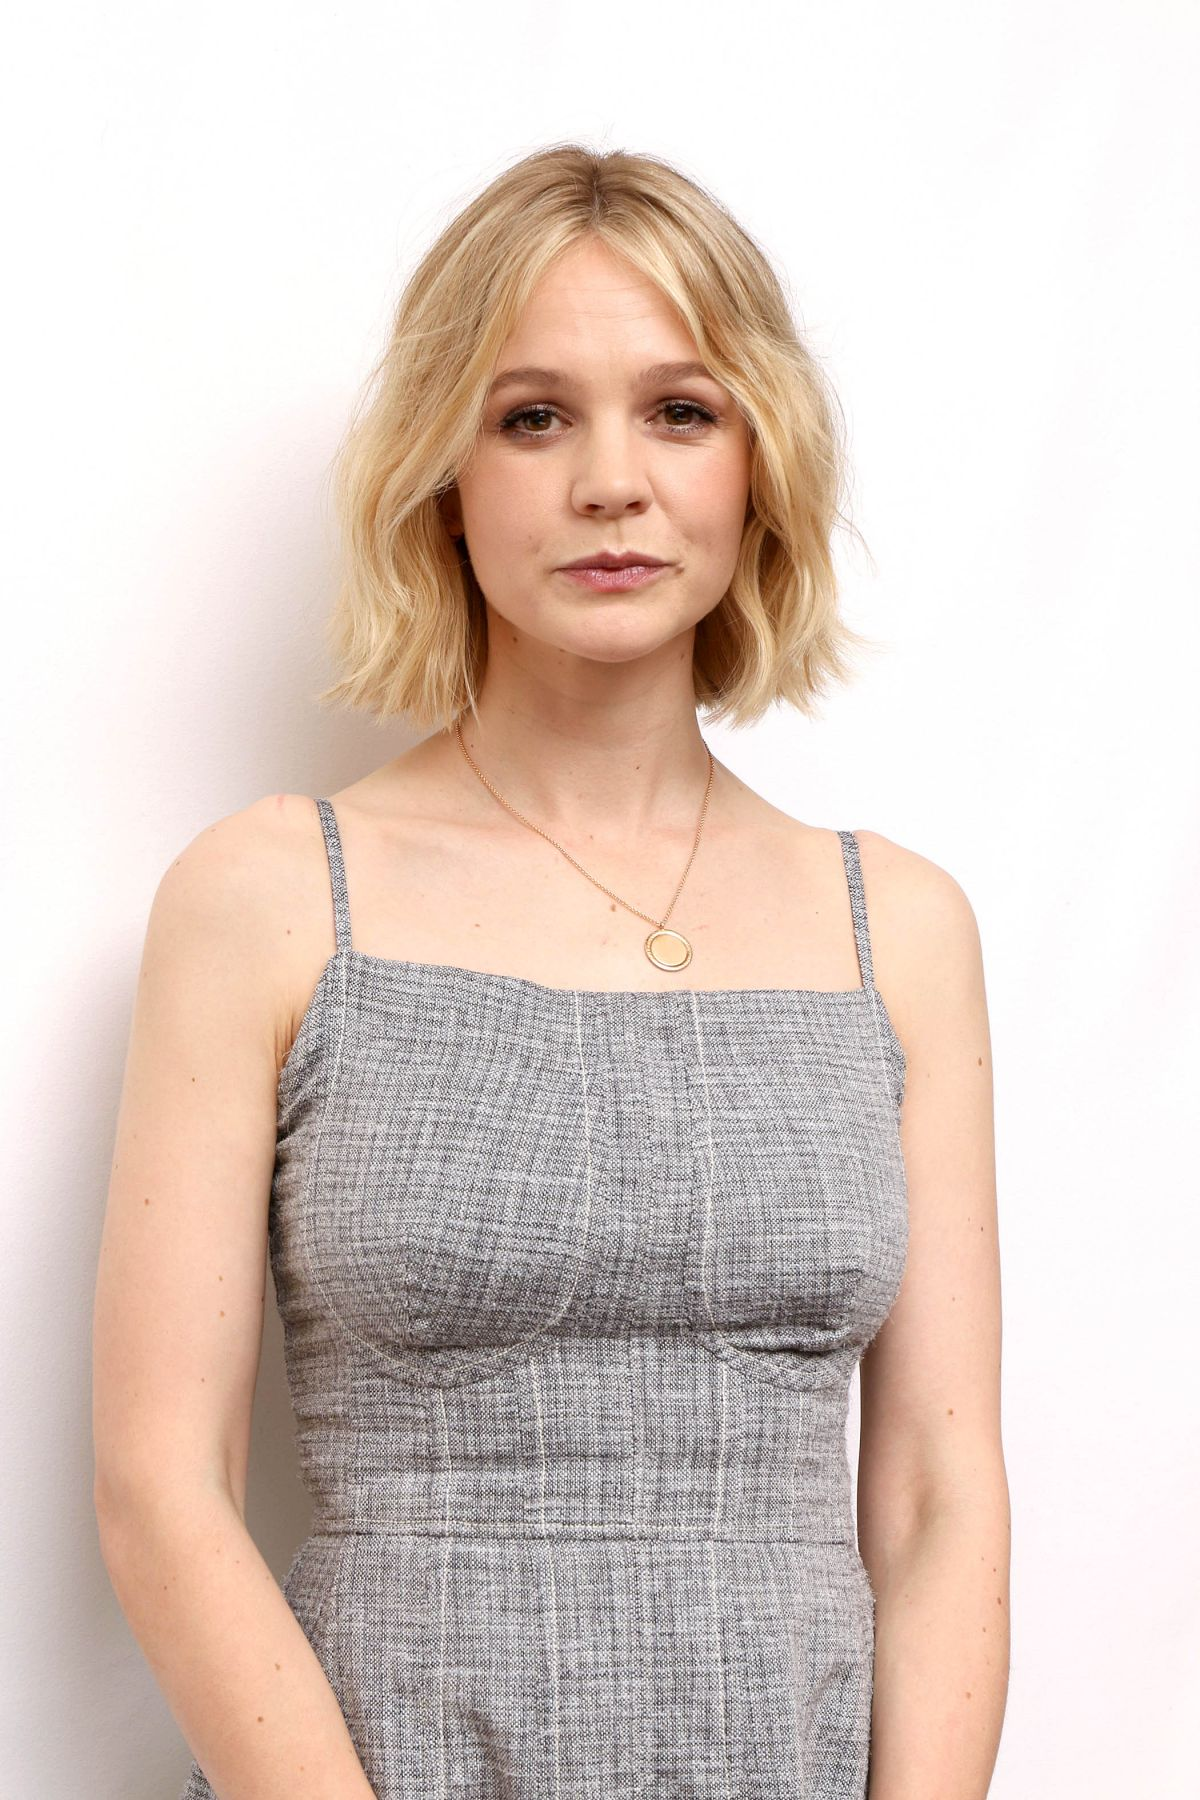 Carey Mulligan At 'Mudbound' photocall, Toronto ... Carey Mulligan